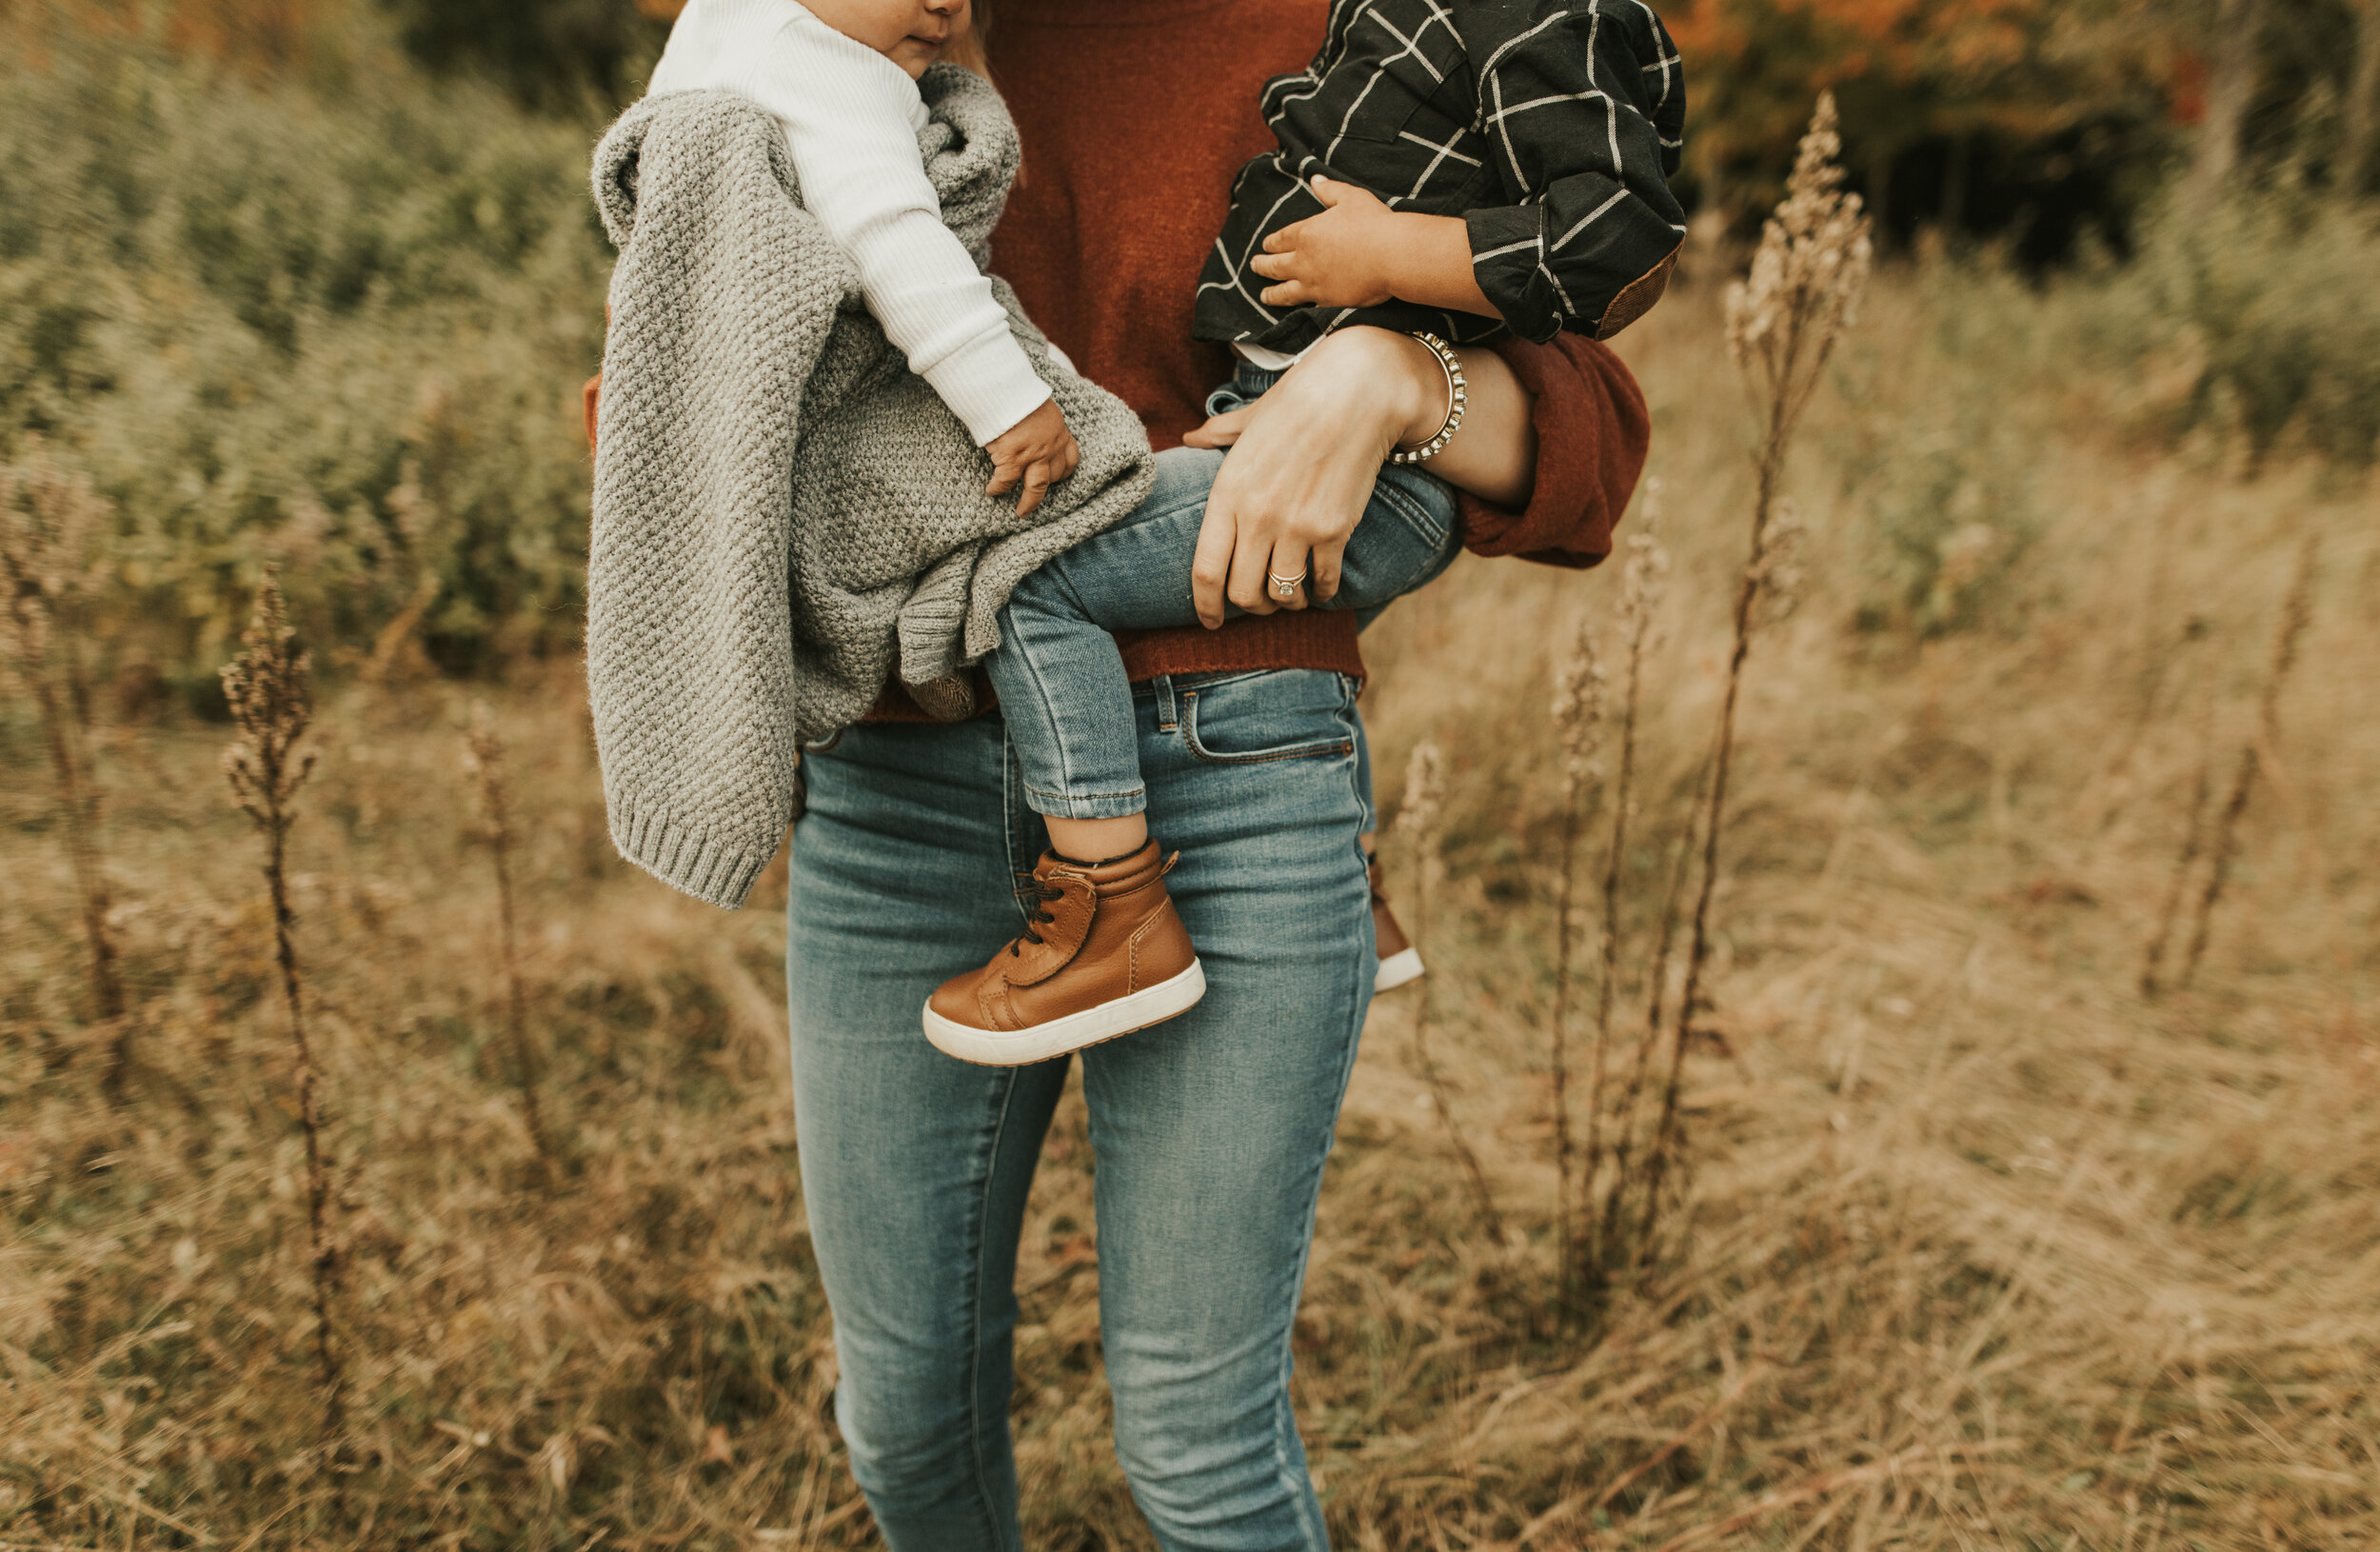 JacksonFamily_Autumn2019_39.jpg